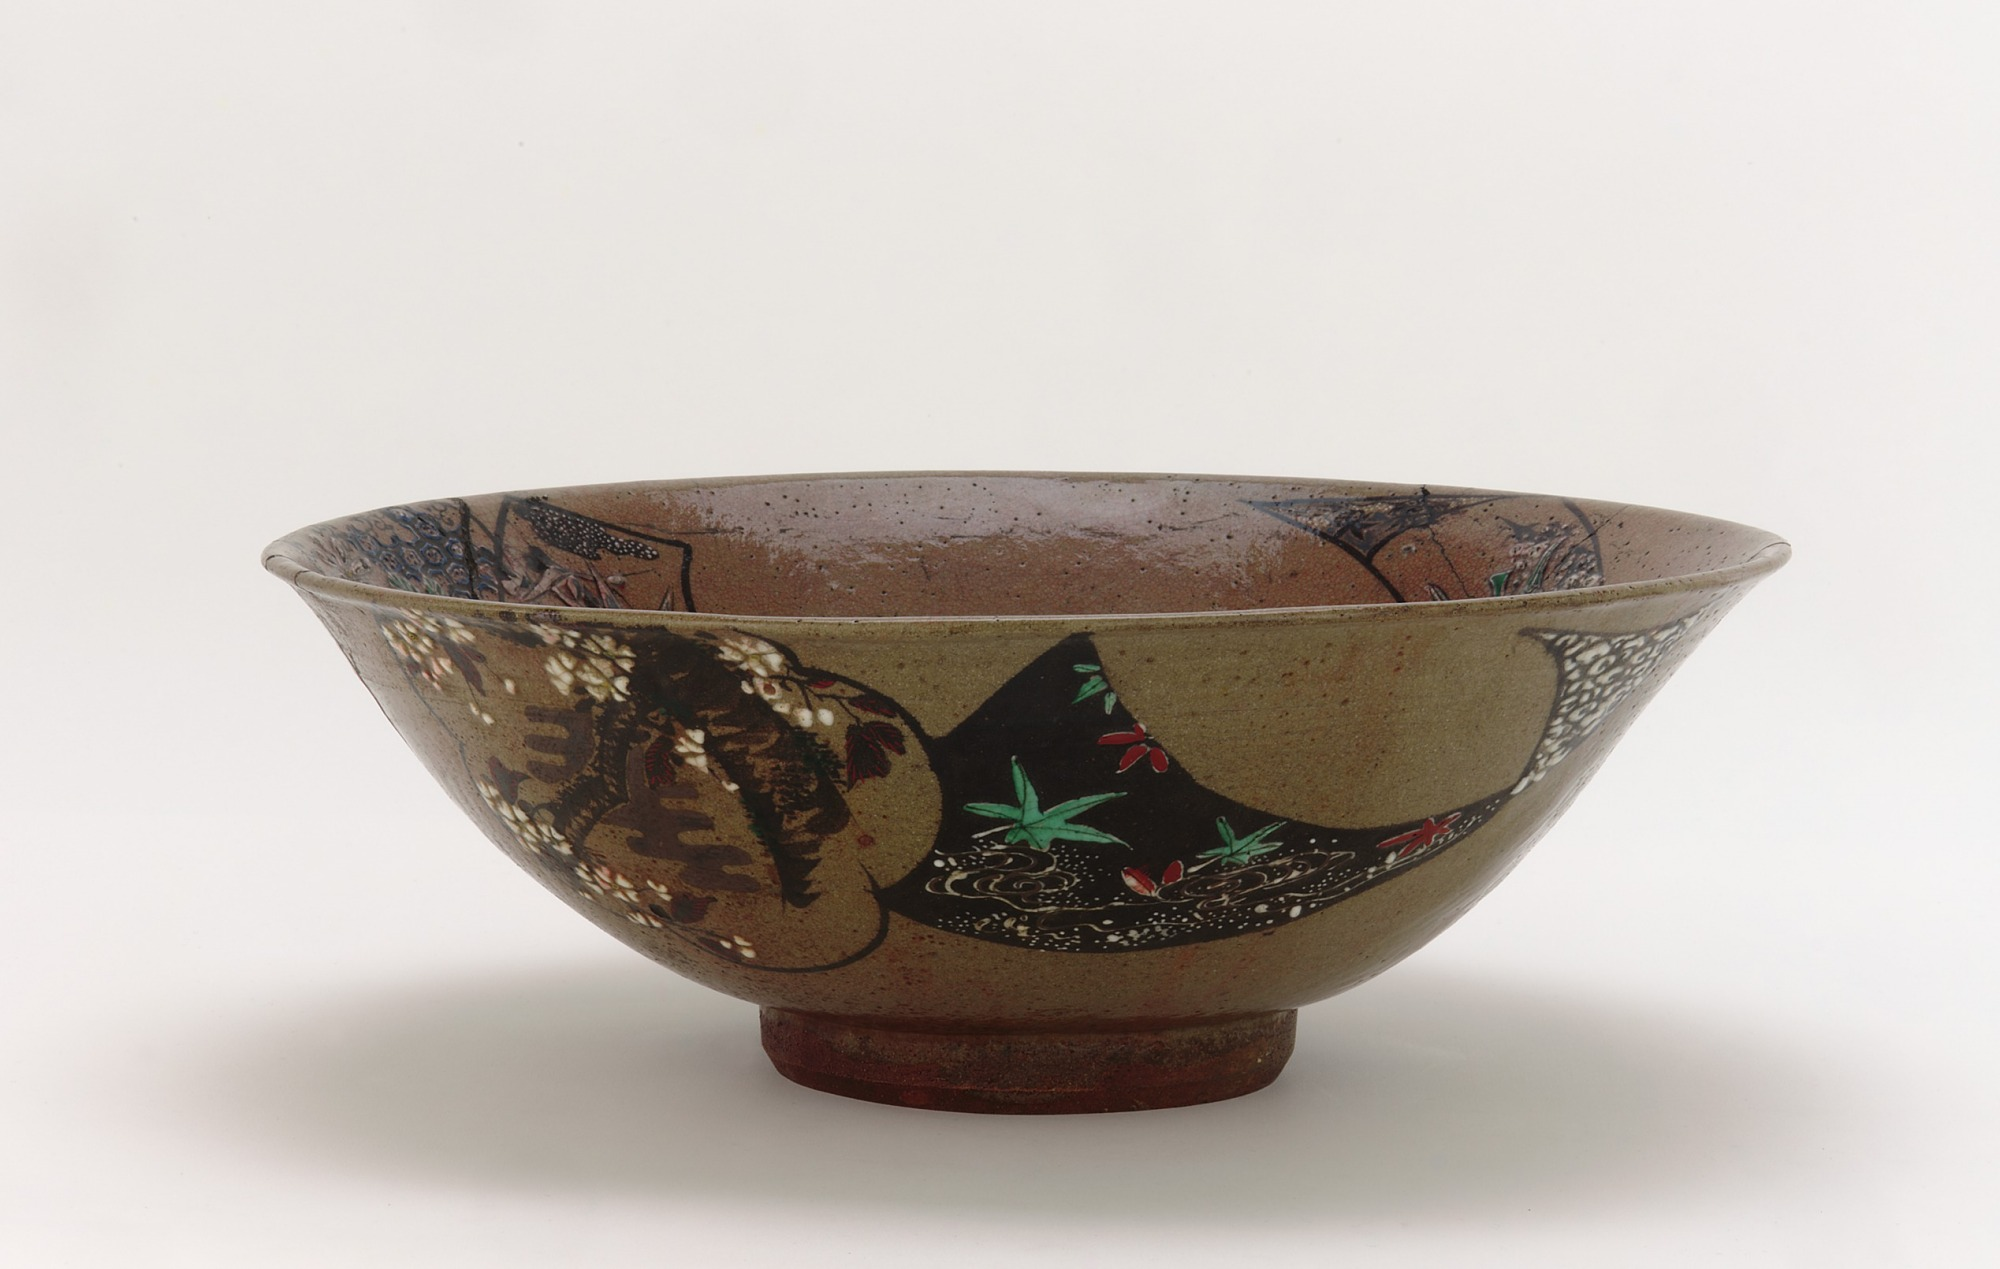 Bowl with decoration in the style of Ogata Kenzan